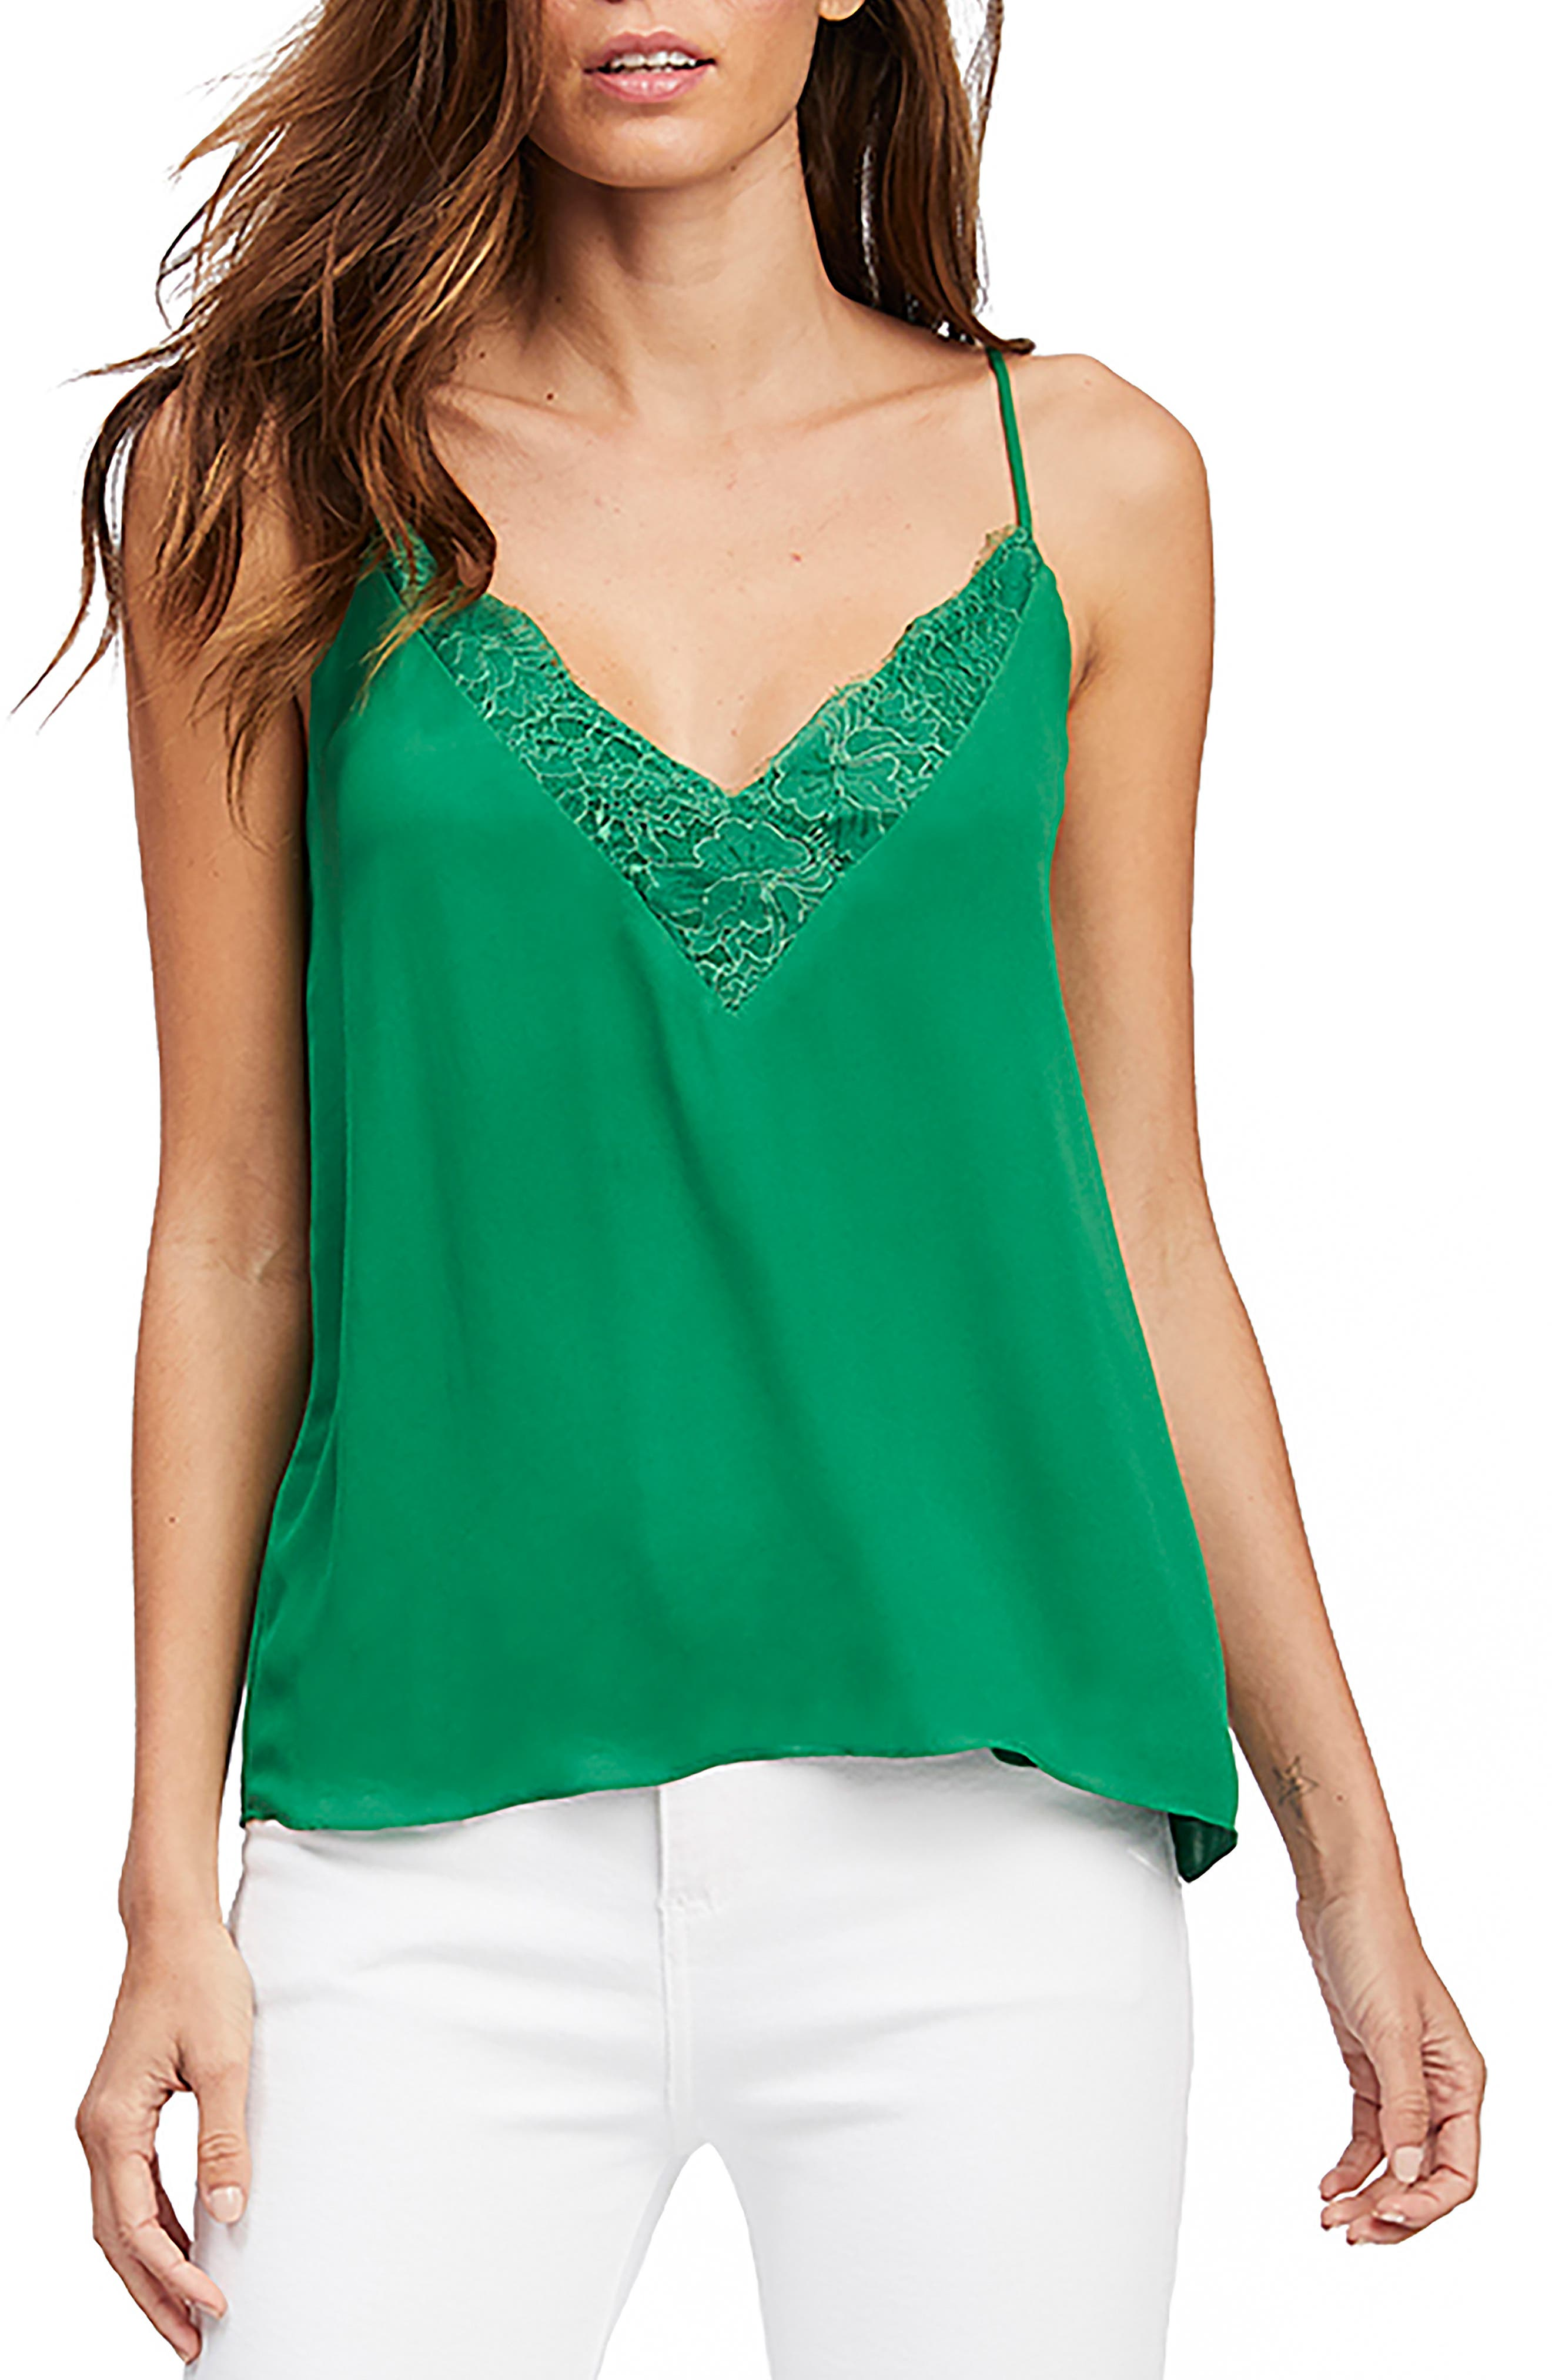 Socialite Lace Trim Camisole Top, Green